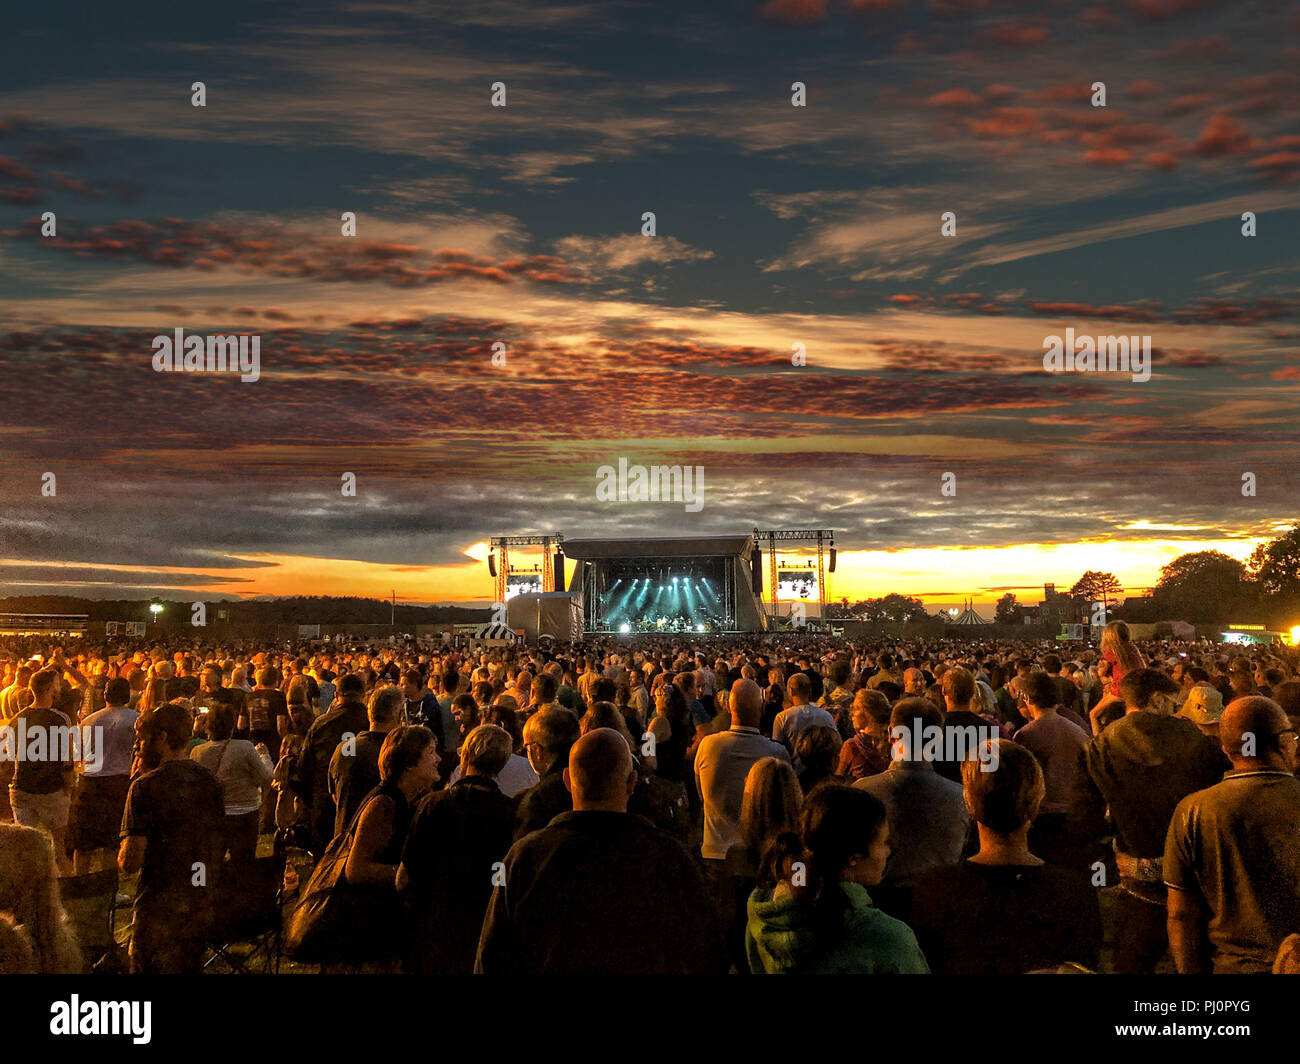 Live music at The Downs Festival, Bristol, England at sunset in the United Kingdom. - Stock Image